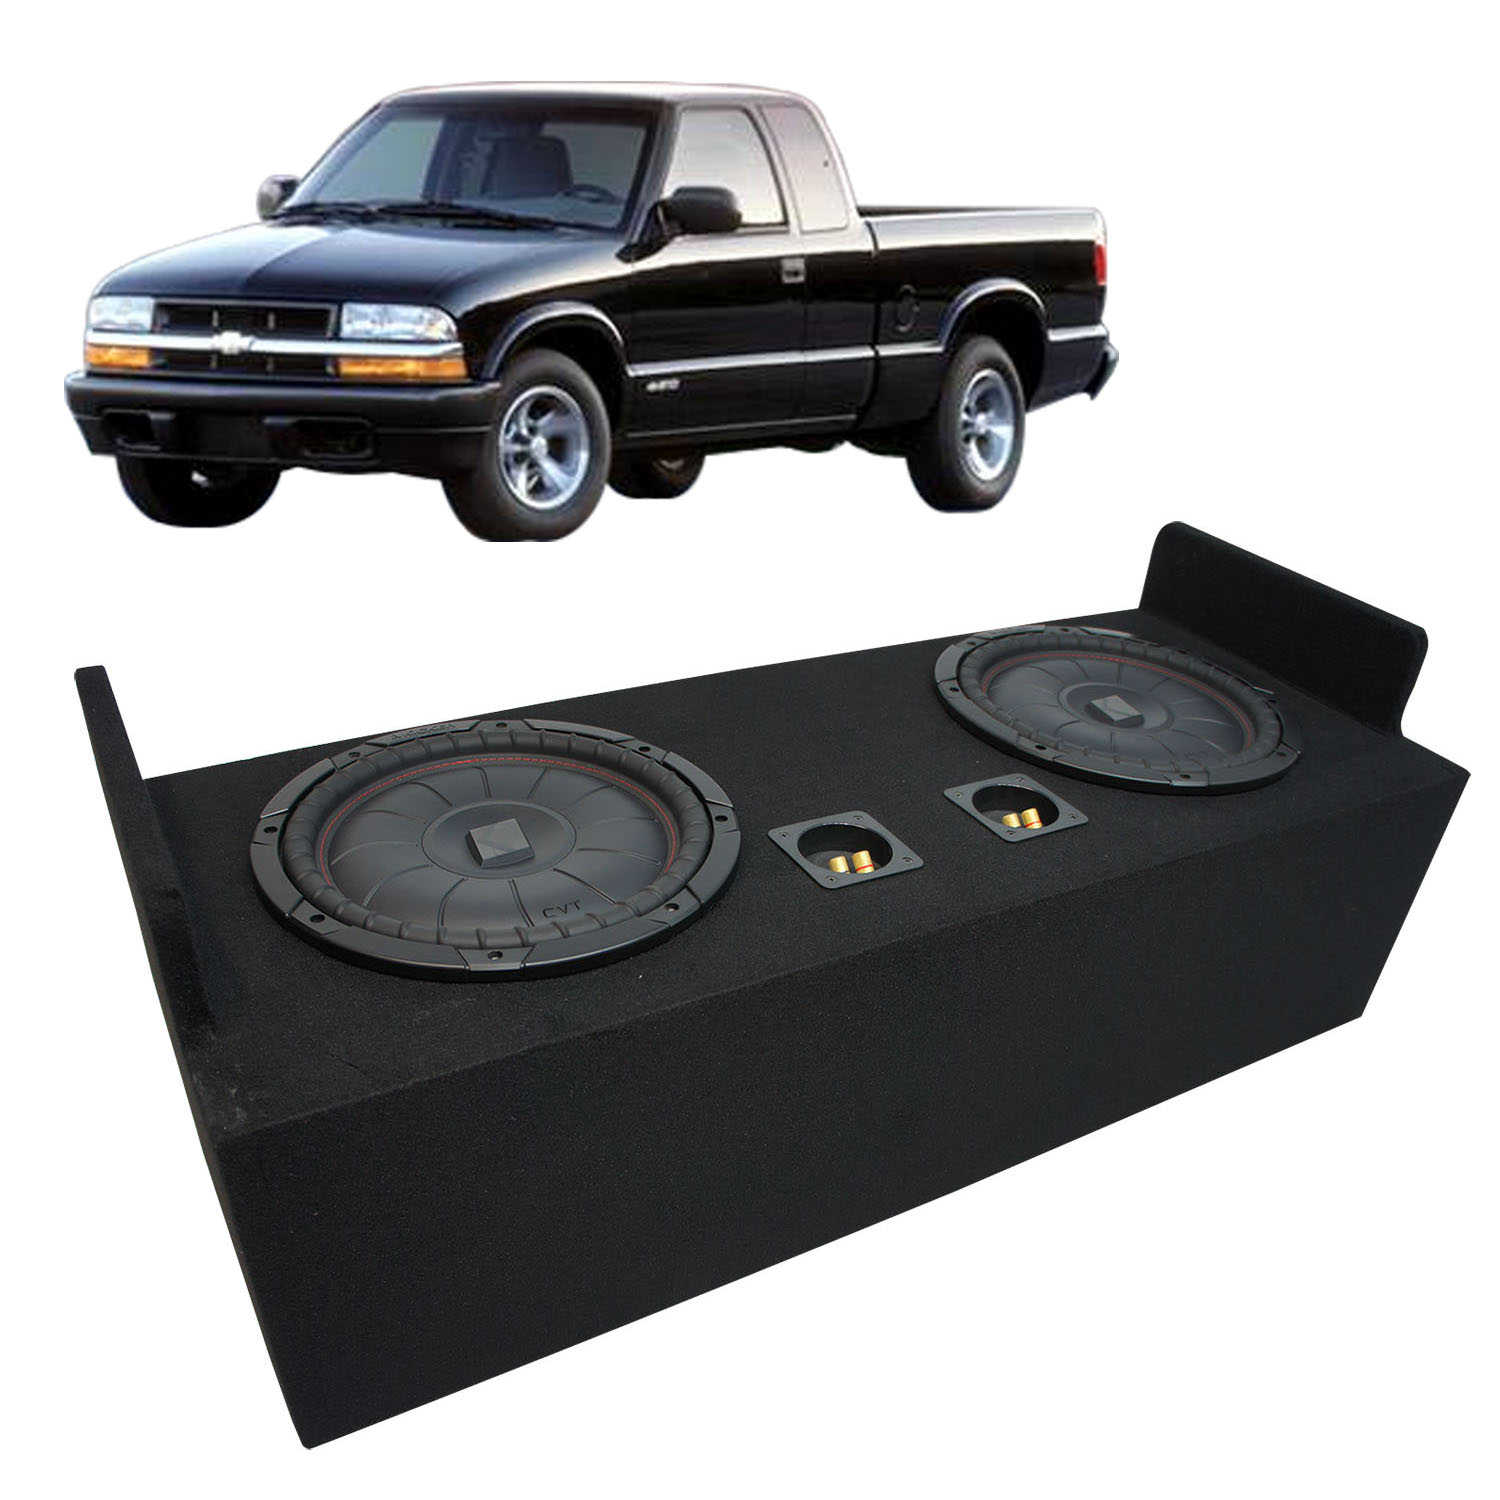 Truck Car Cover Chevrolet Chevy S-10 Long Bed Std Cab 1982 1983-1990